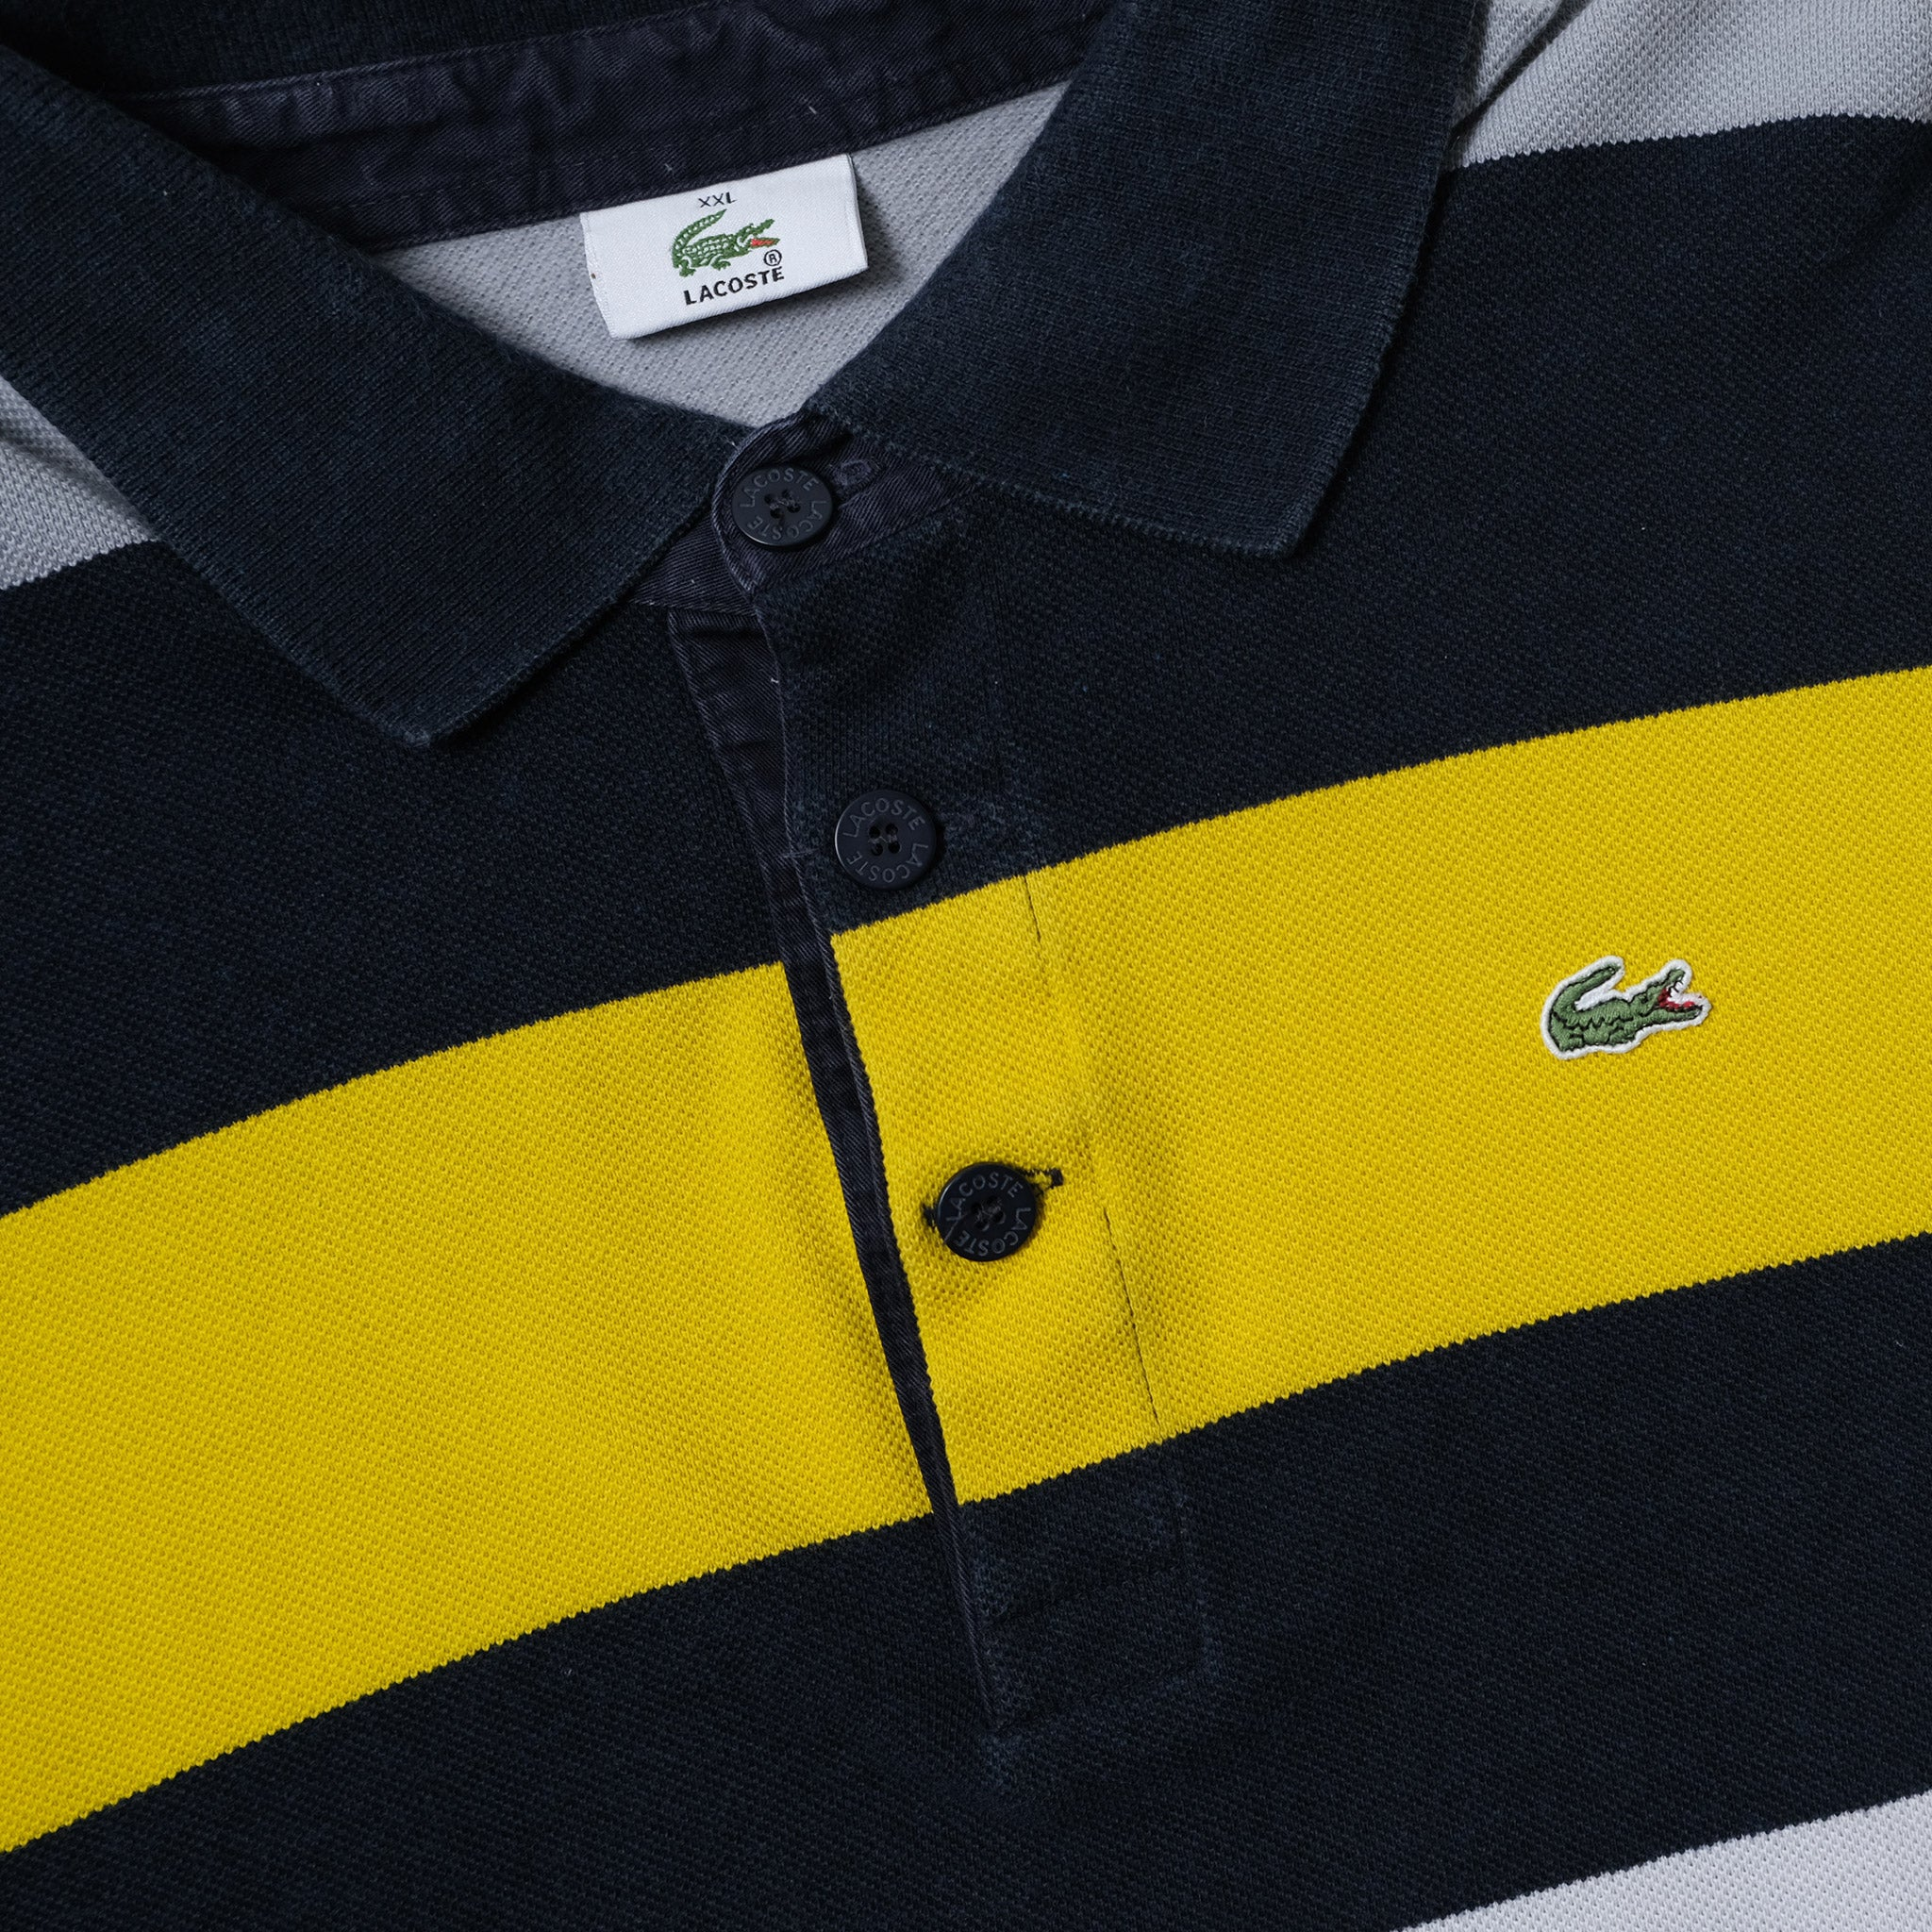 Vintage Lacoste Long Polo XLarge / XXL